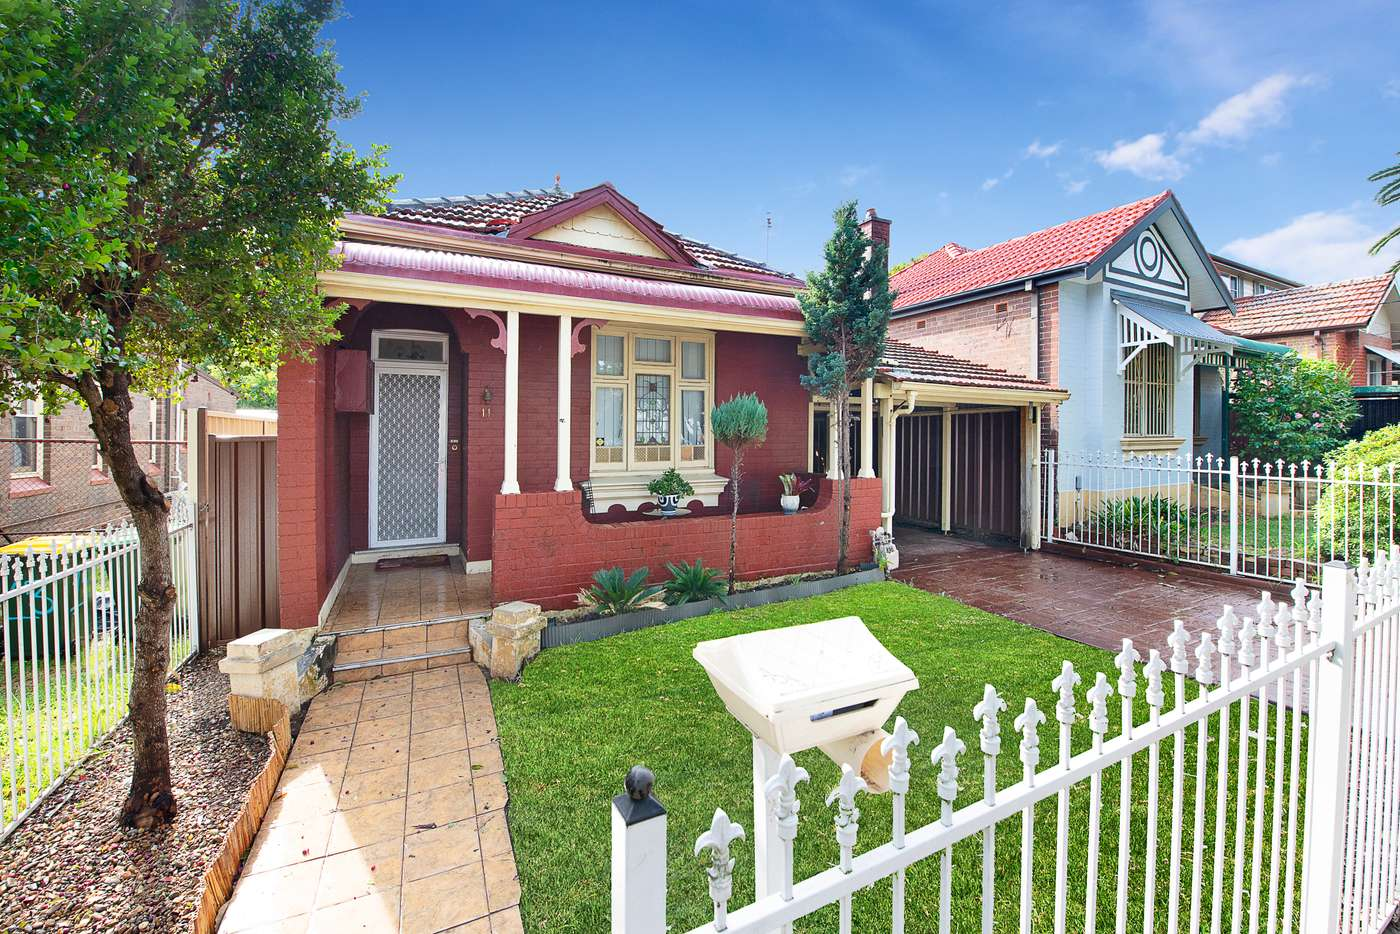 Main view of Homely house listing, 11 Heighway Ave, Ashfield NSW 2131